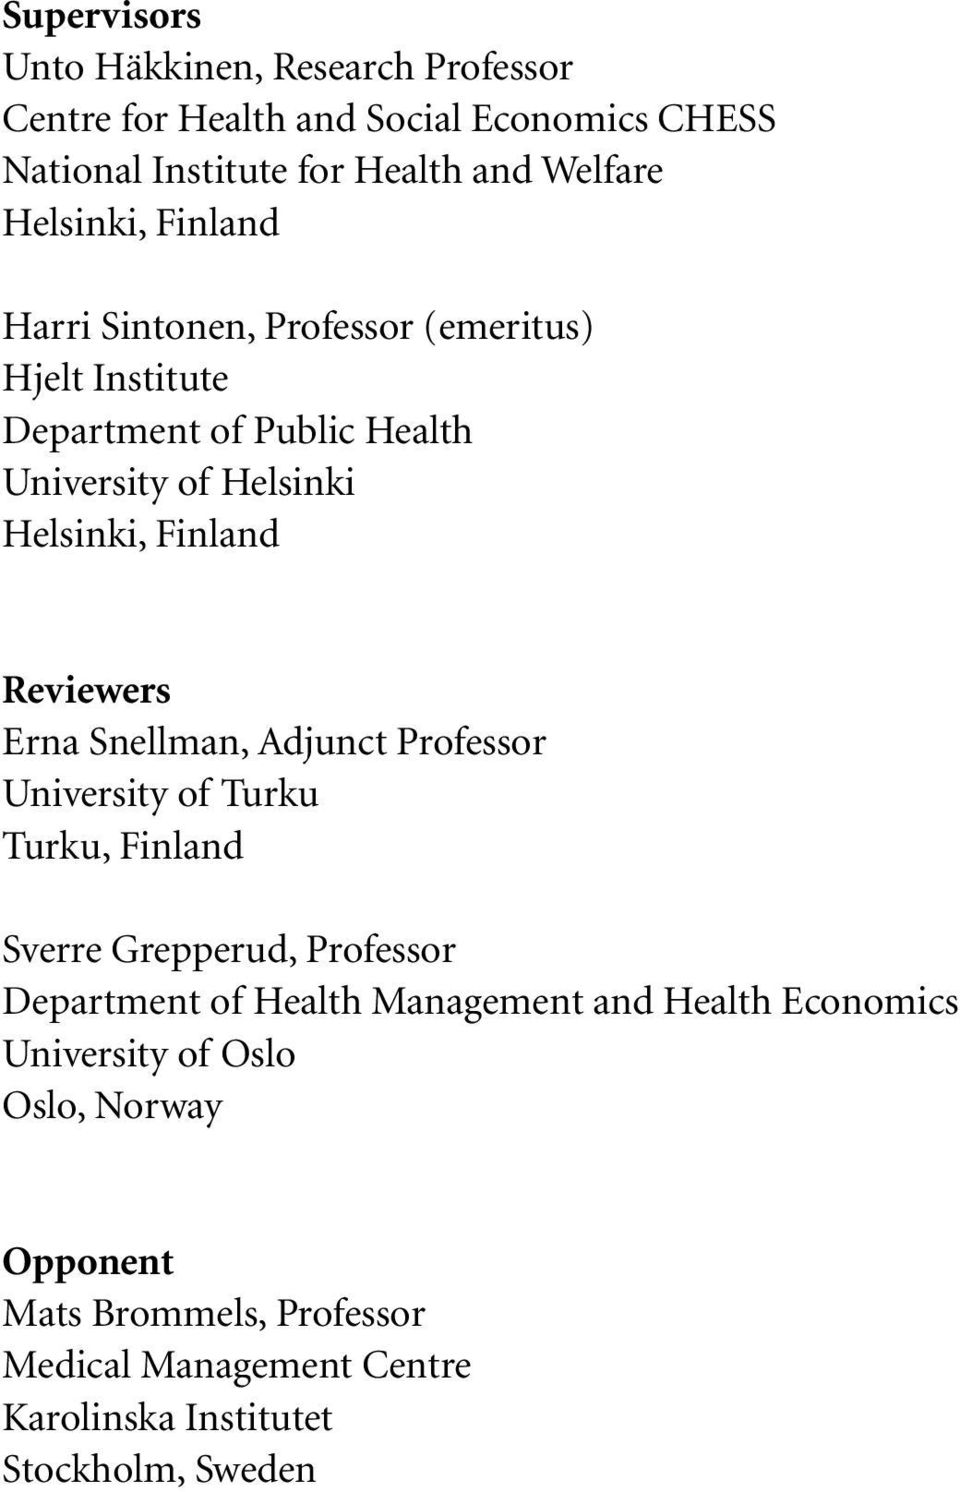 Reviewers Erna Snellman, Adjunct Professor University of Turku Turku, Finland Sverre Grepperud, Professor Department of Health Management